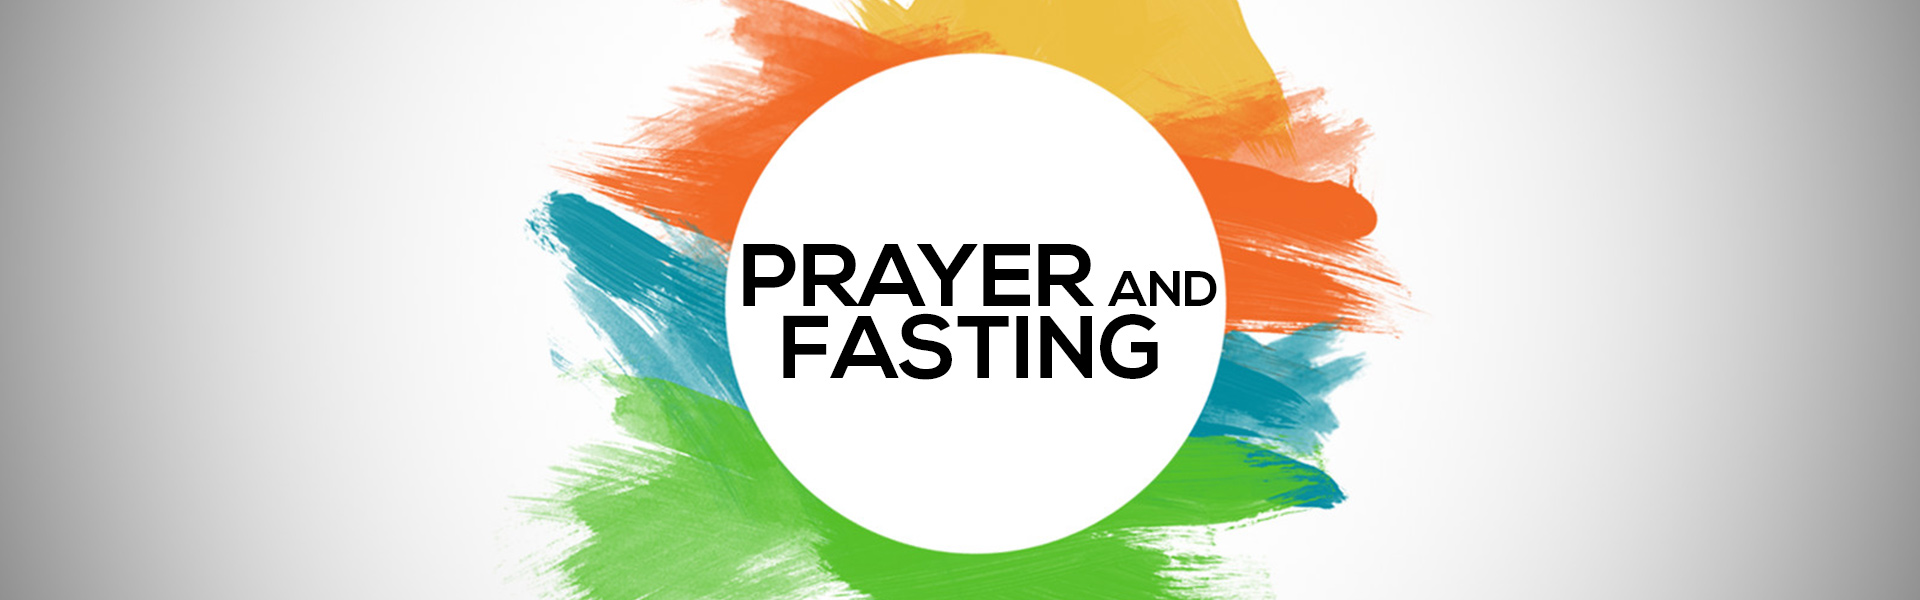 fasting and prayer clip art pictures to pin on pinterest lds family clipart black and white lds clipart family home evening